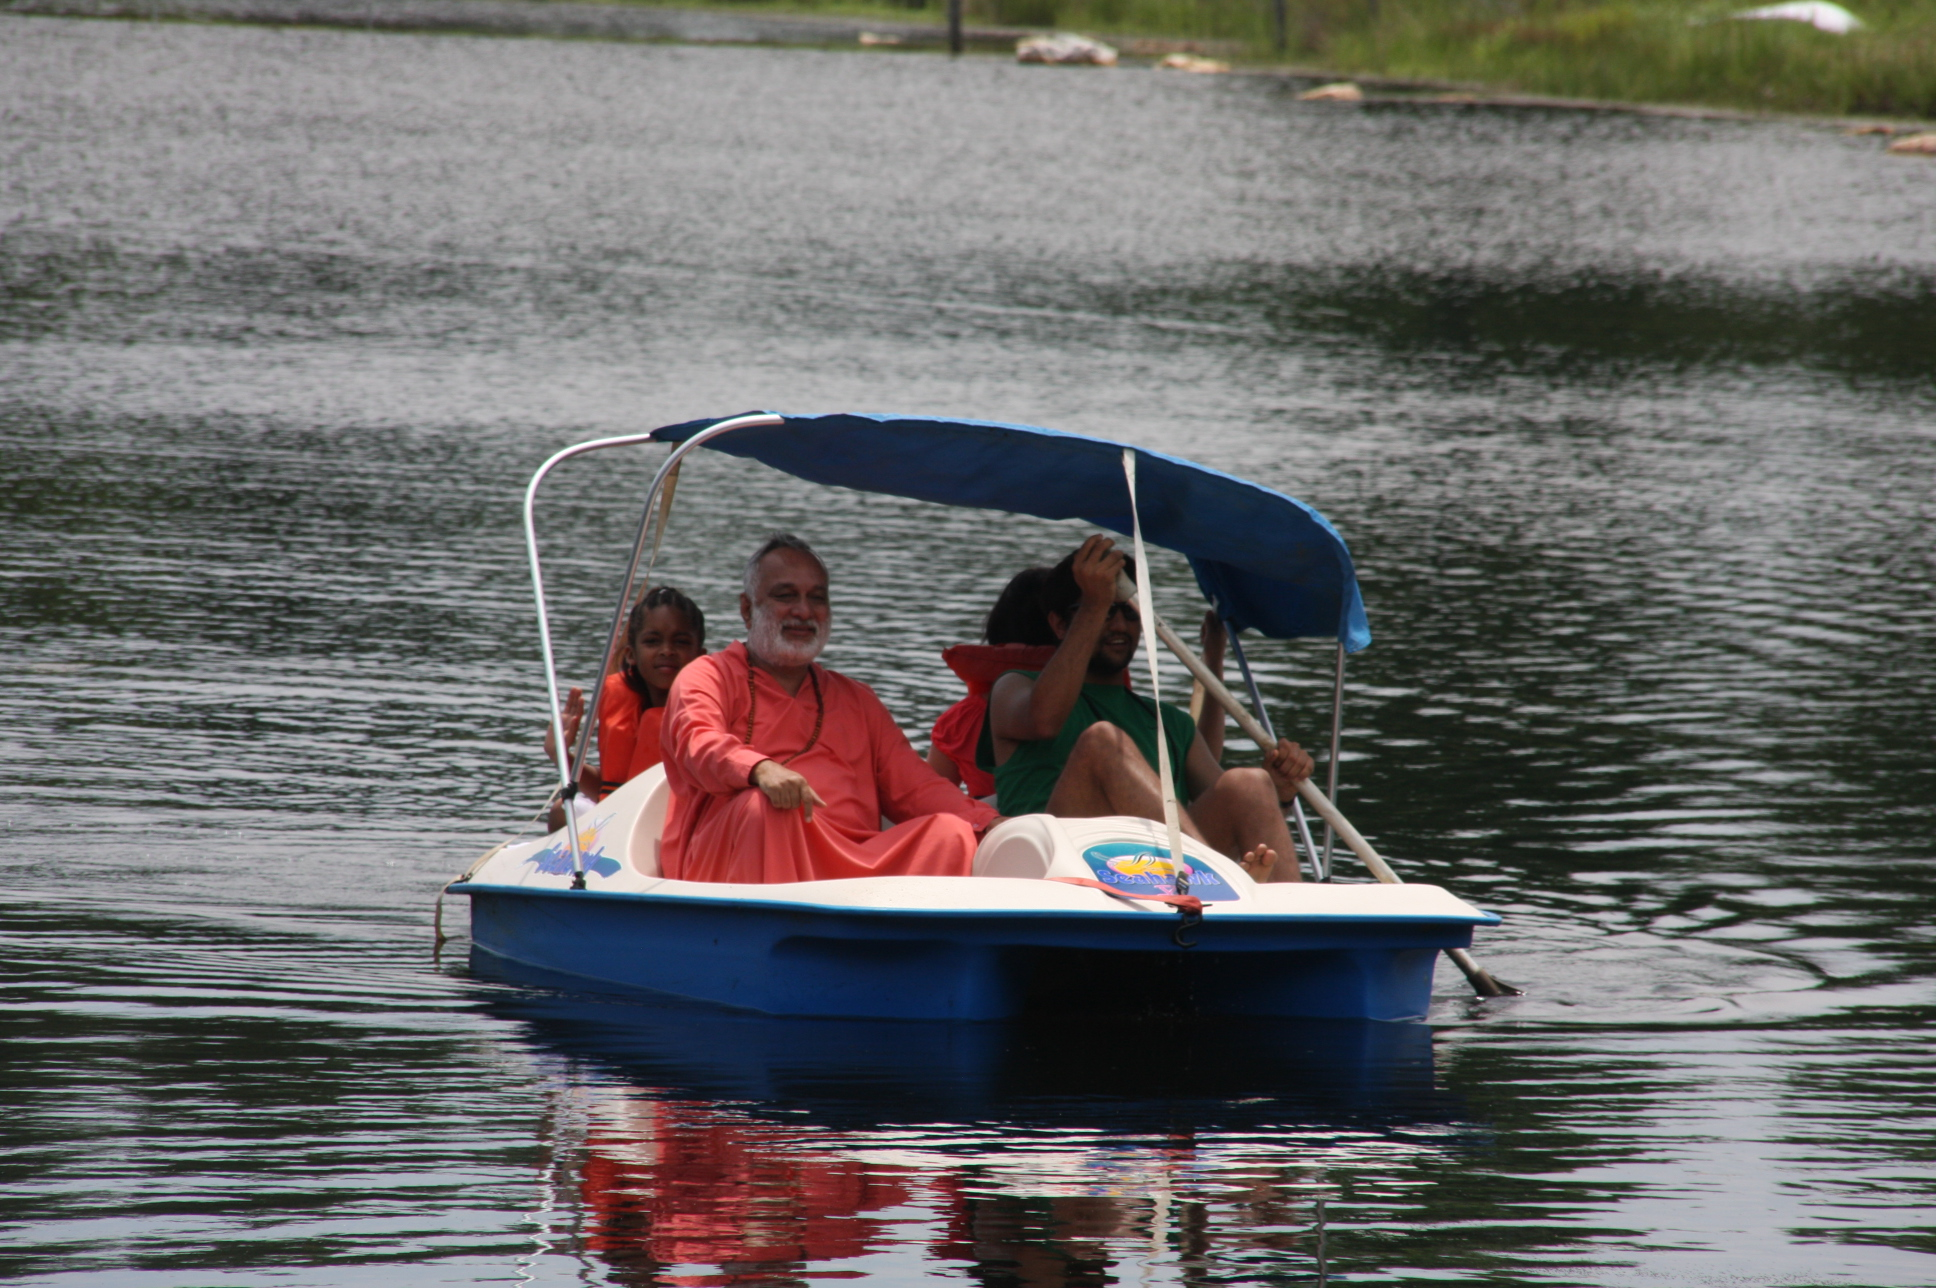 Family on a lake boat